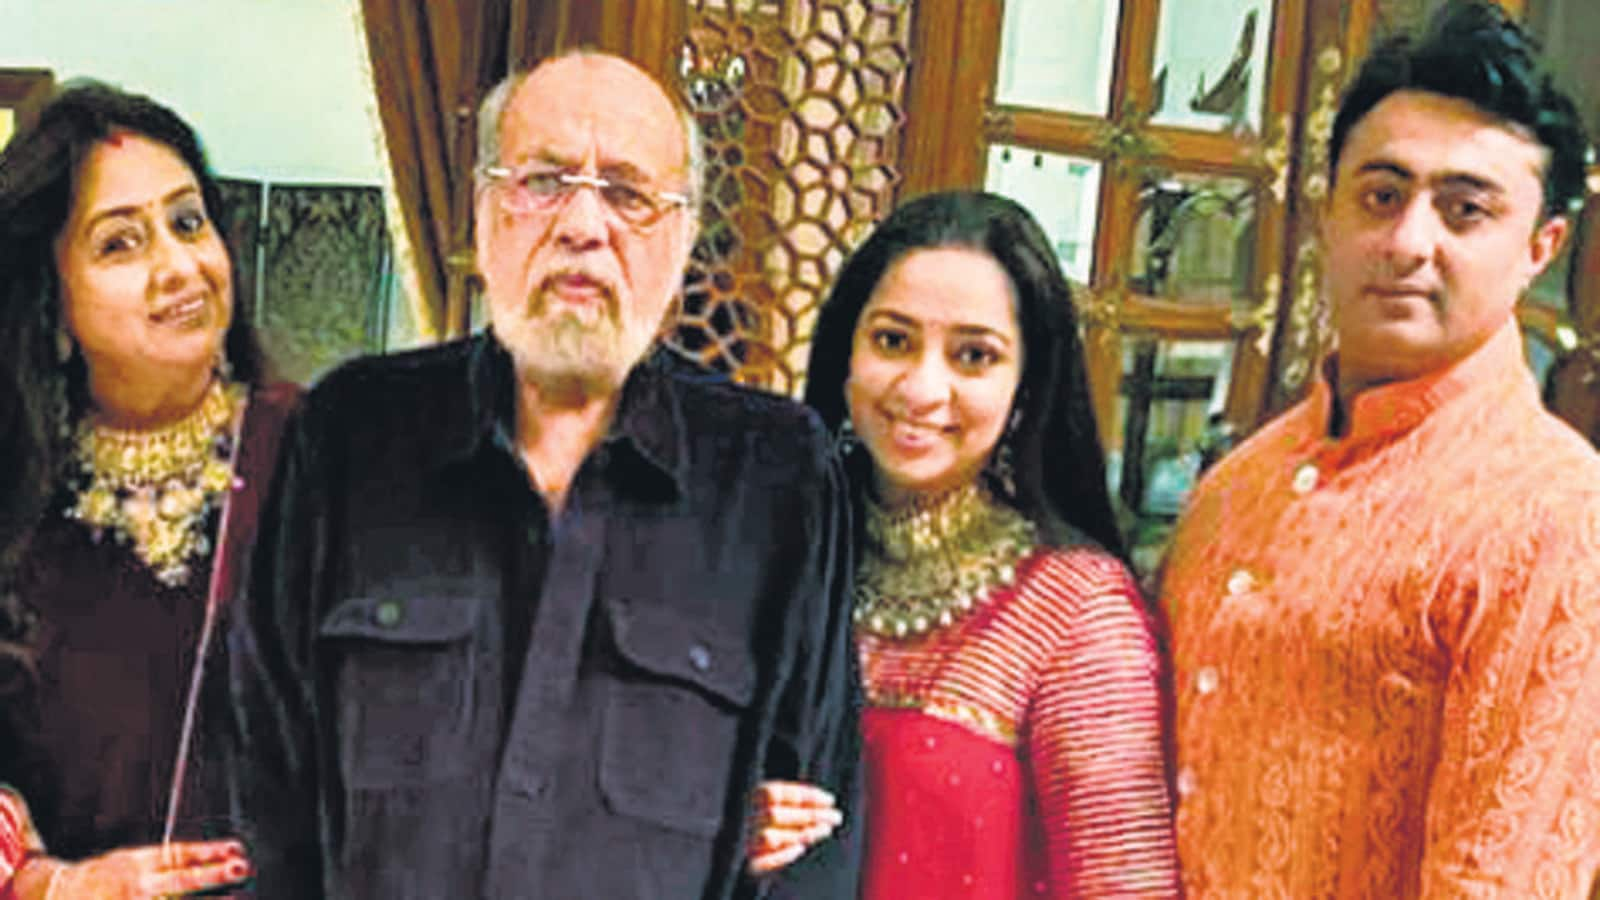 Nidhi Dutta: I will count myself lucky if Binoy and I can be half as happy as my parents are - Hindustan Times